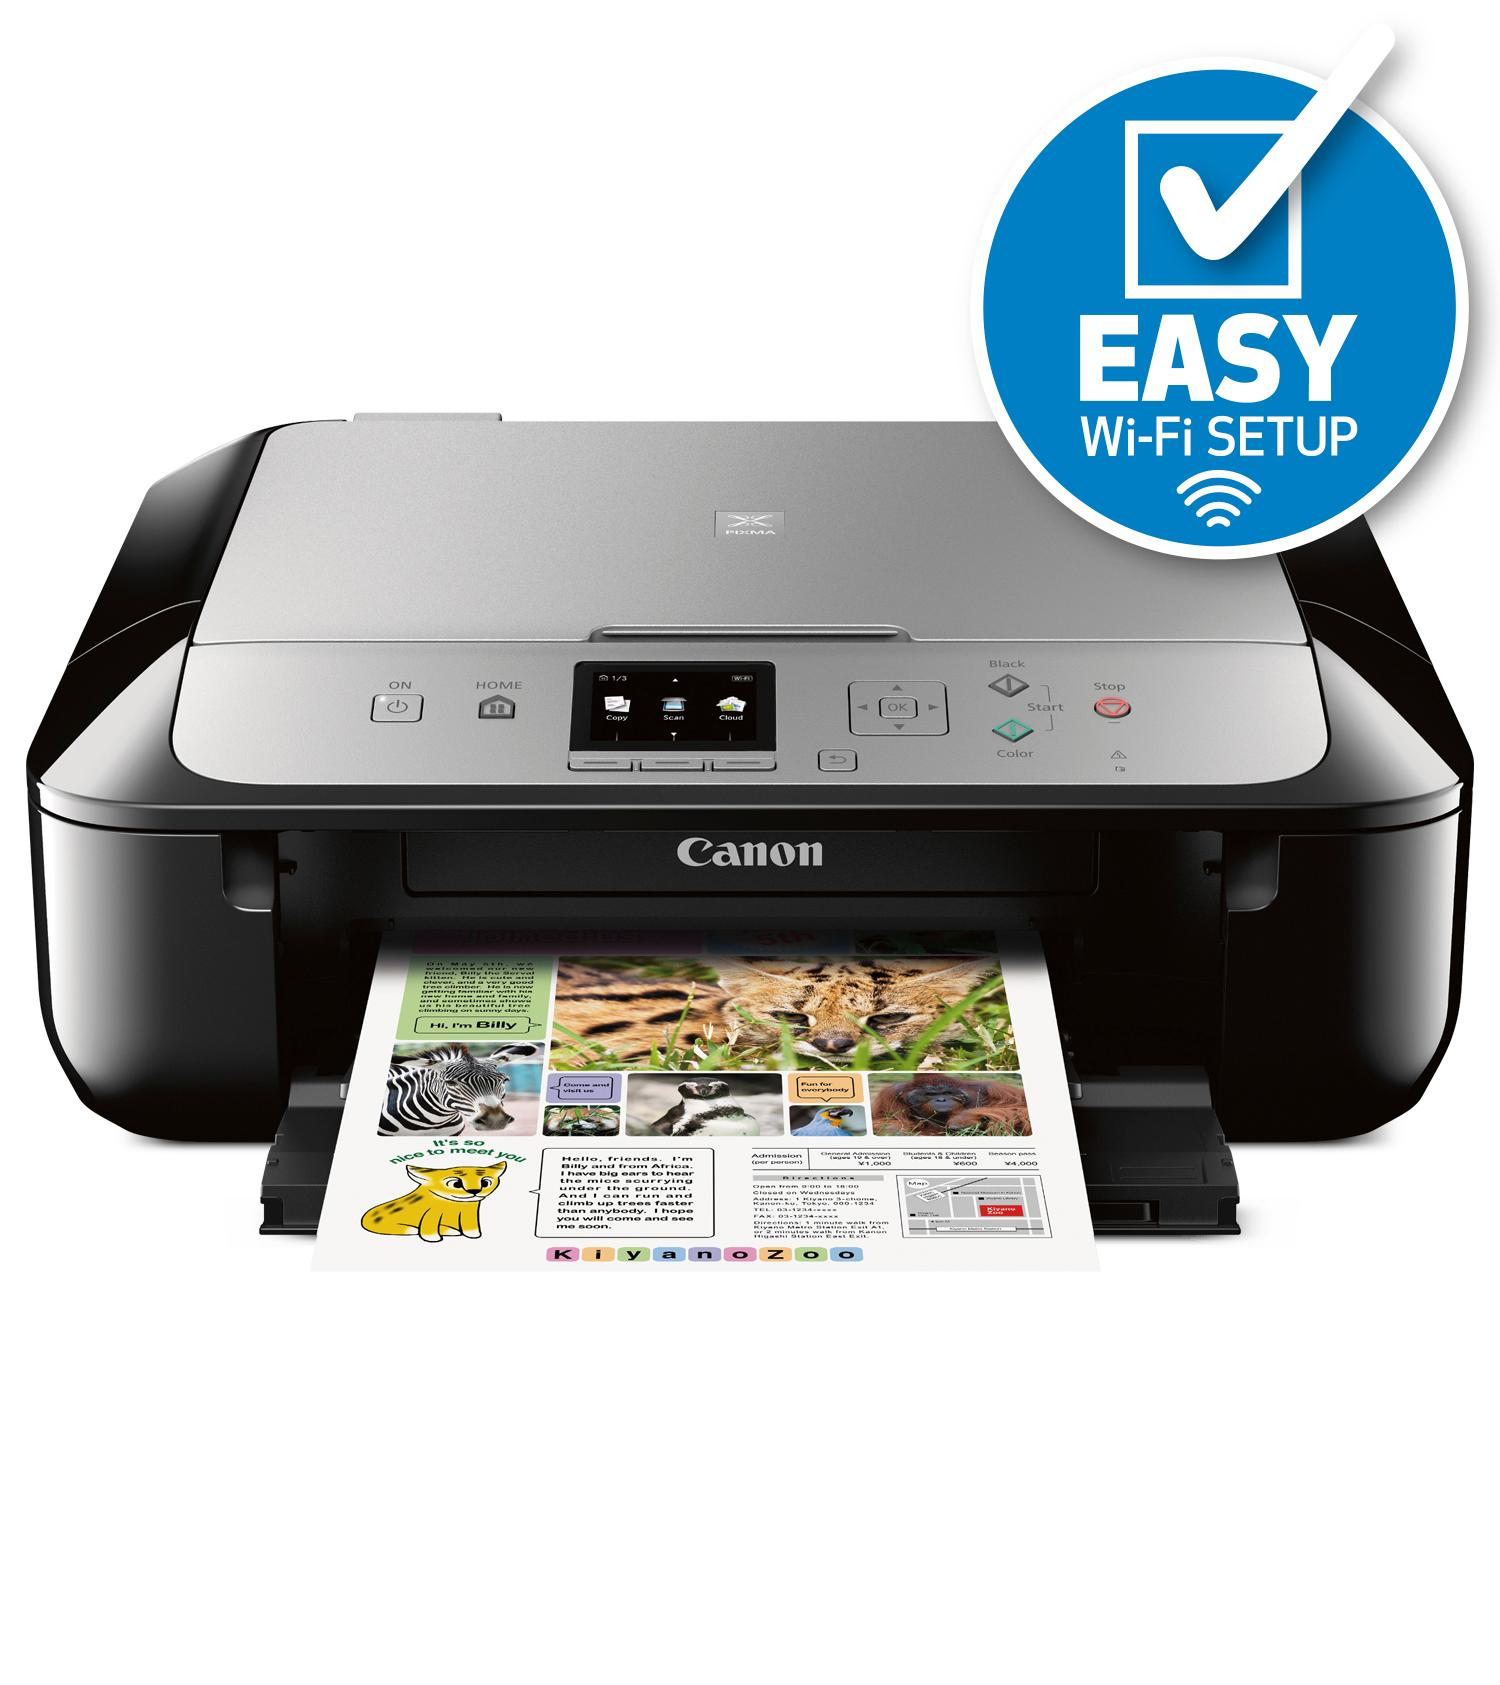 Canon Pixma Mg5721 Wireless All In One Inkjet Printer With